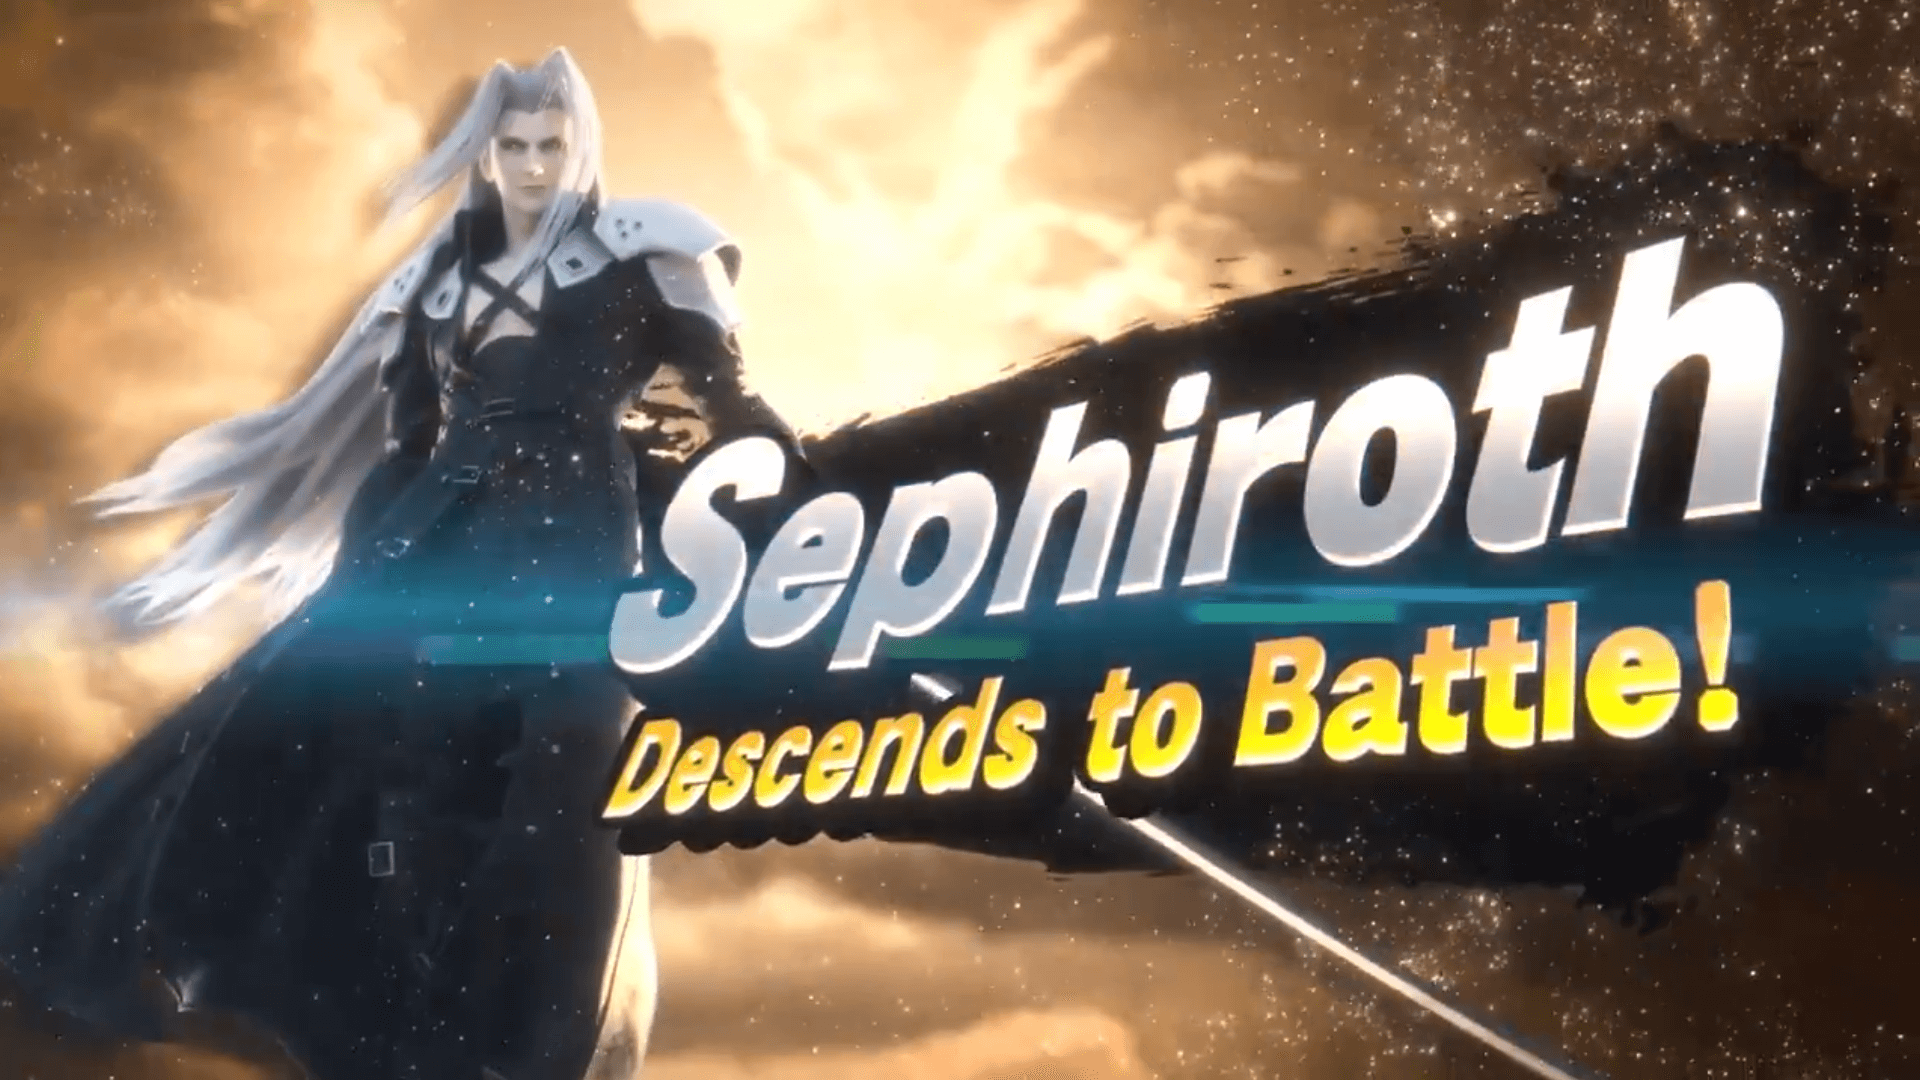 Sephiroth Joins Super Smash Bros Ultimate as the Eighth DLC Fighter